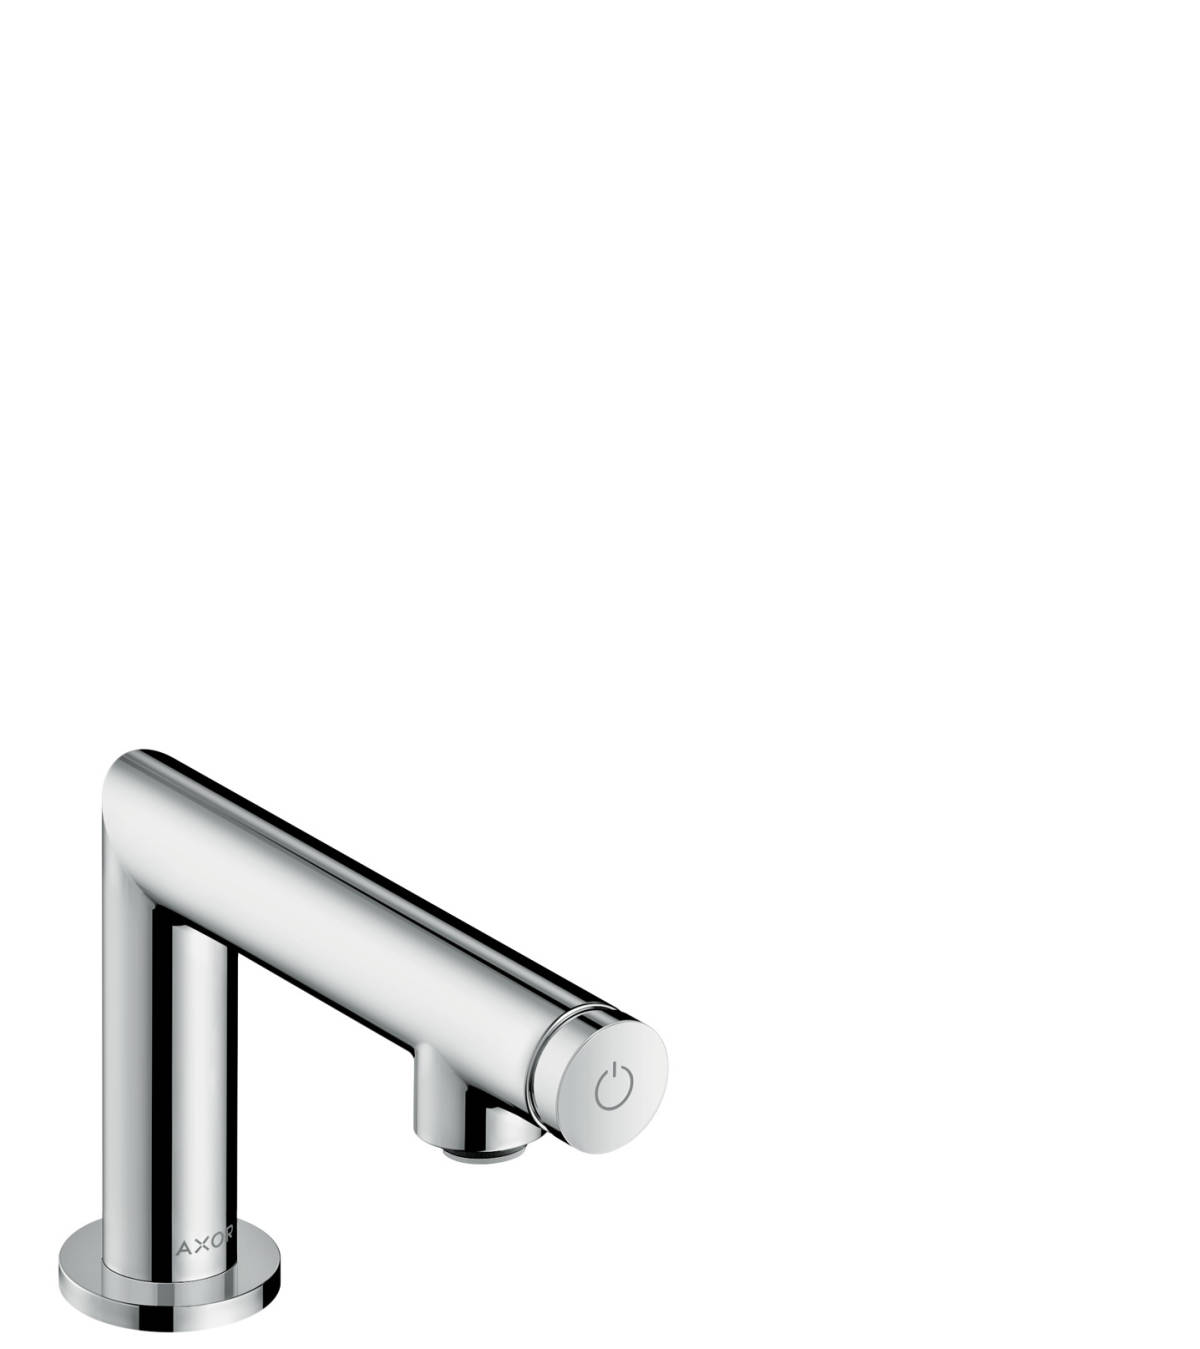 Pillar tap Select 80 without waste set, Chrome, 45130000